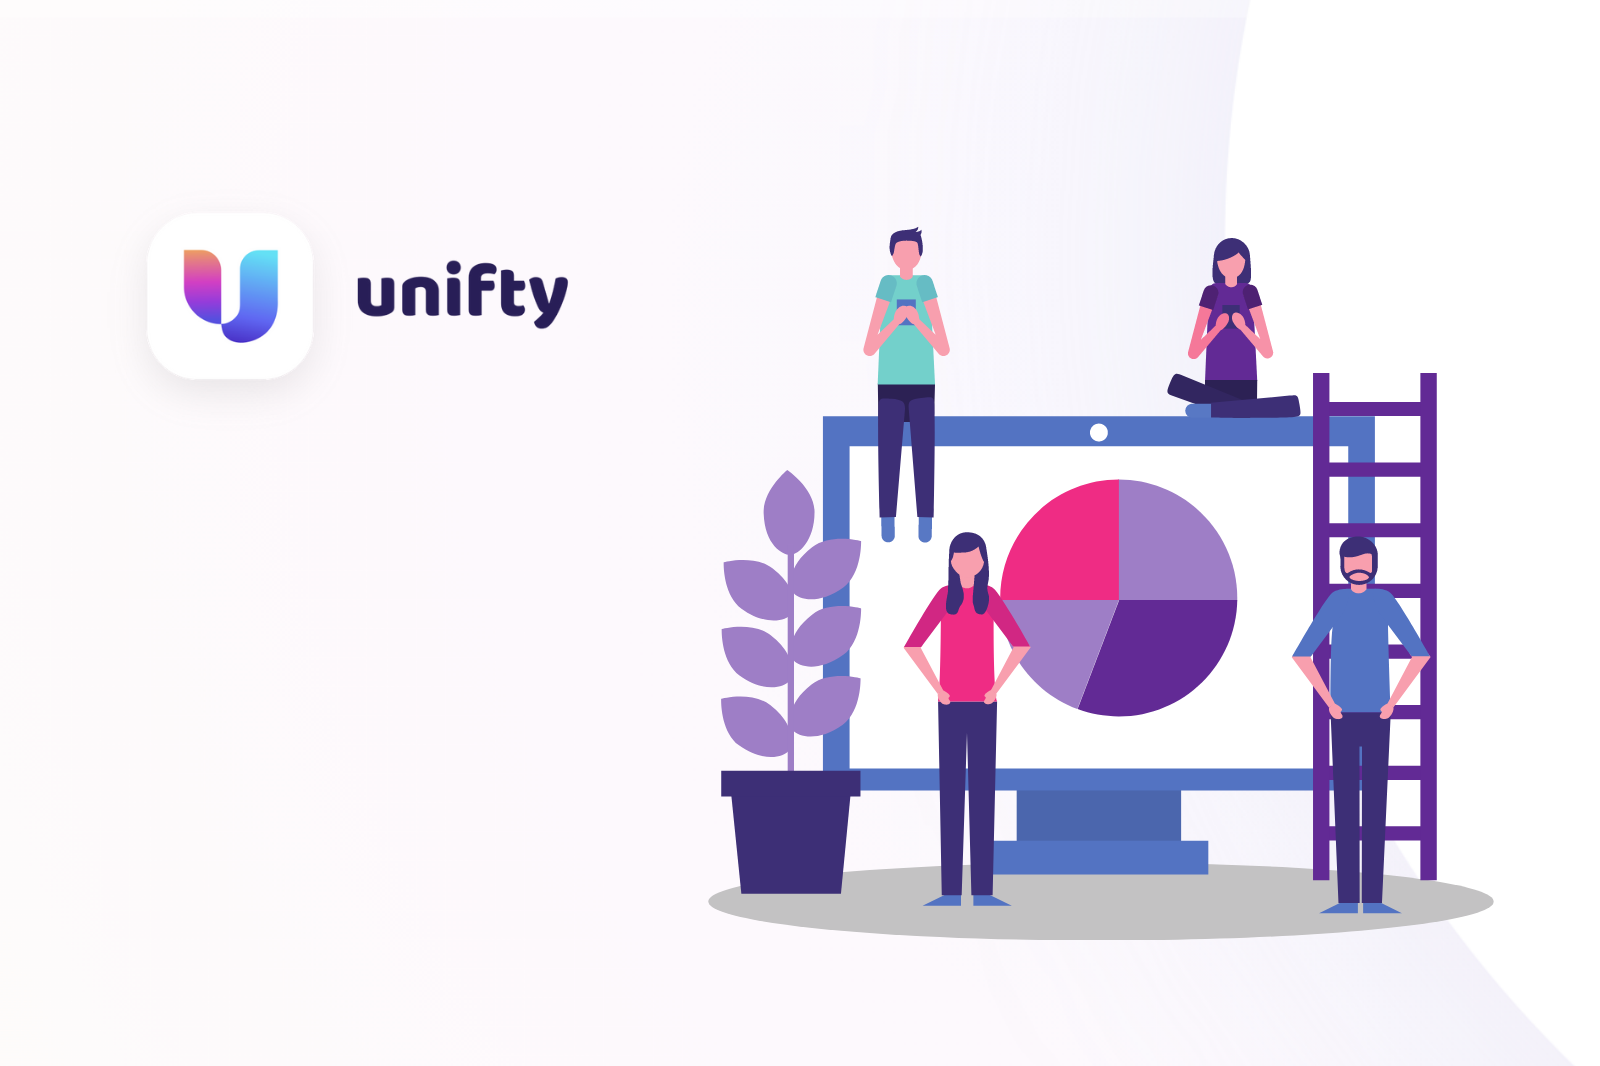 Announcing the $UNT Fair Launch, $NIF Staking, & Community Governance Proposals